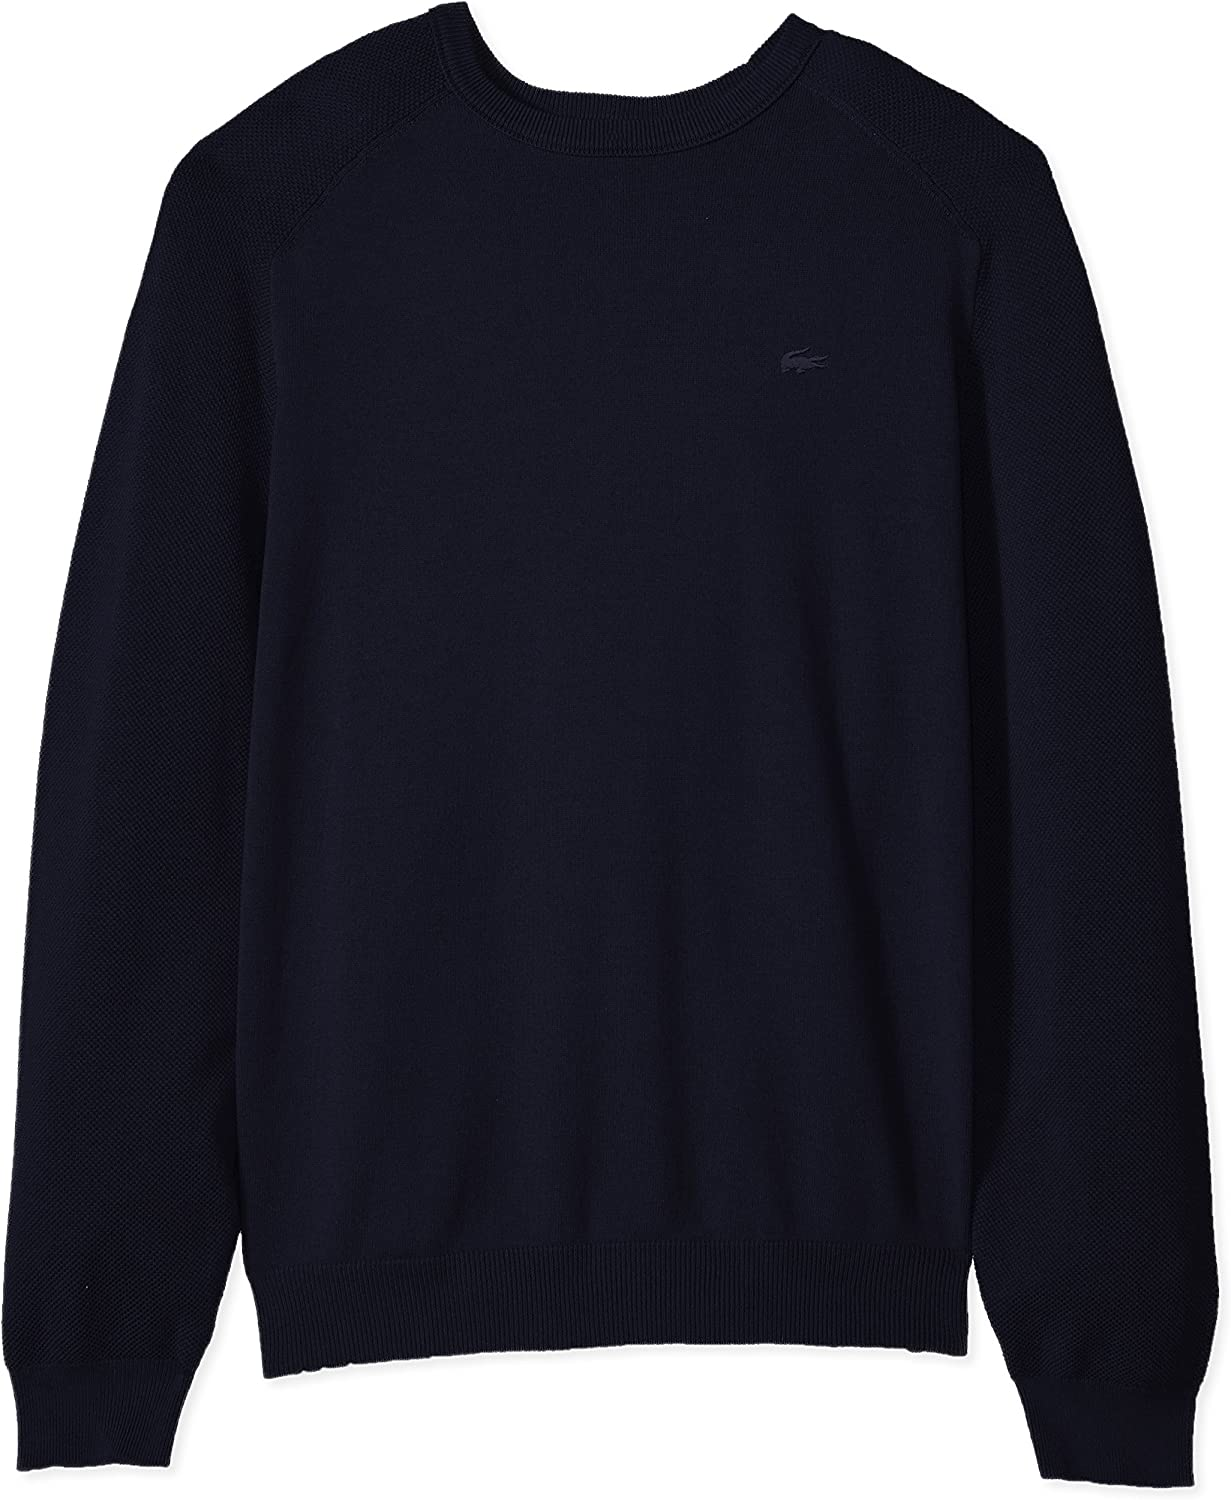 Lacoste Mens Long Sleeve Casual Elegance Premium Crew Sweater AH4544